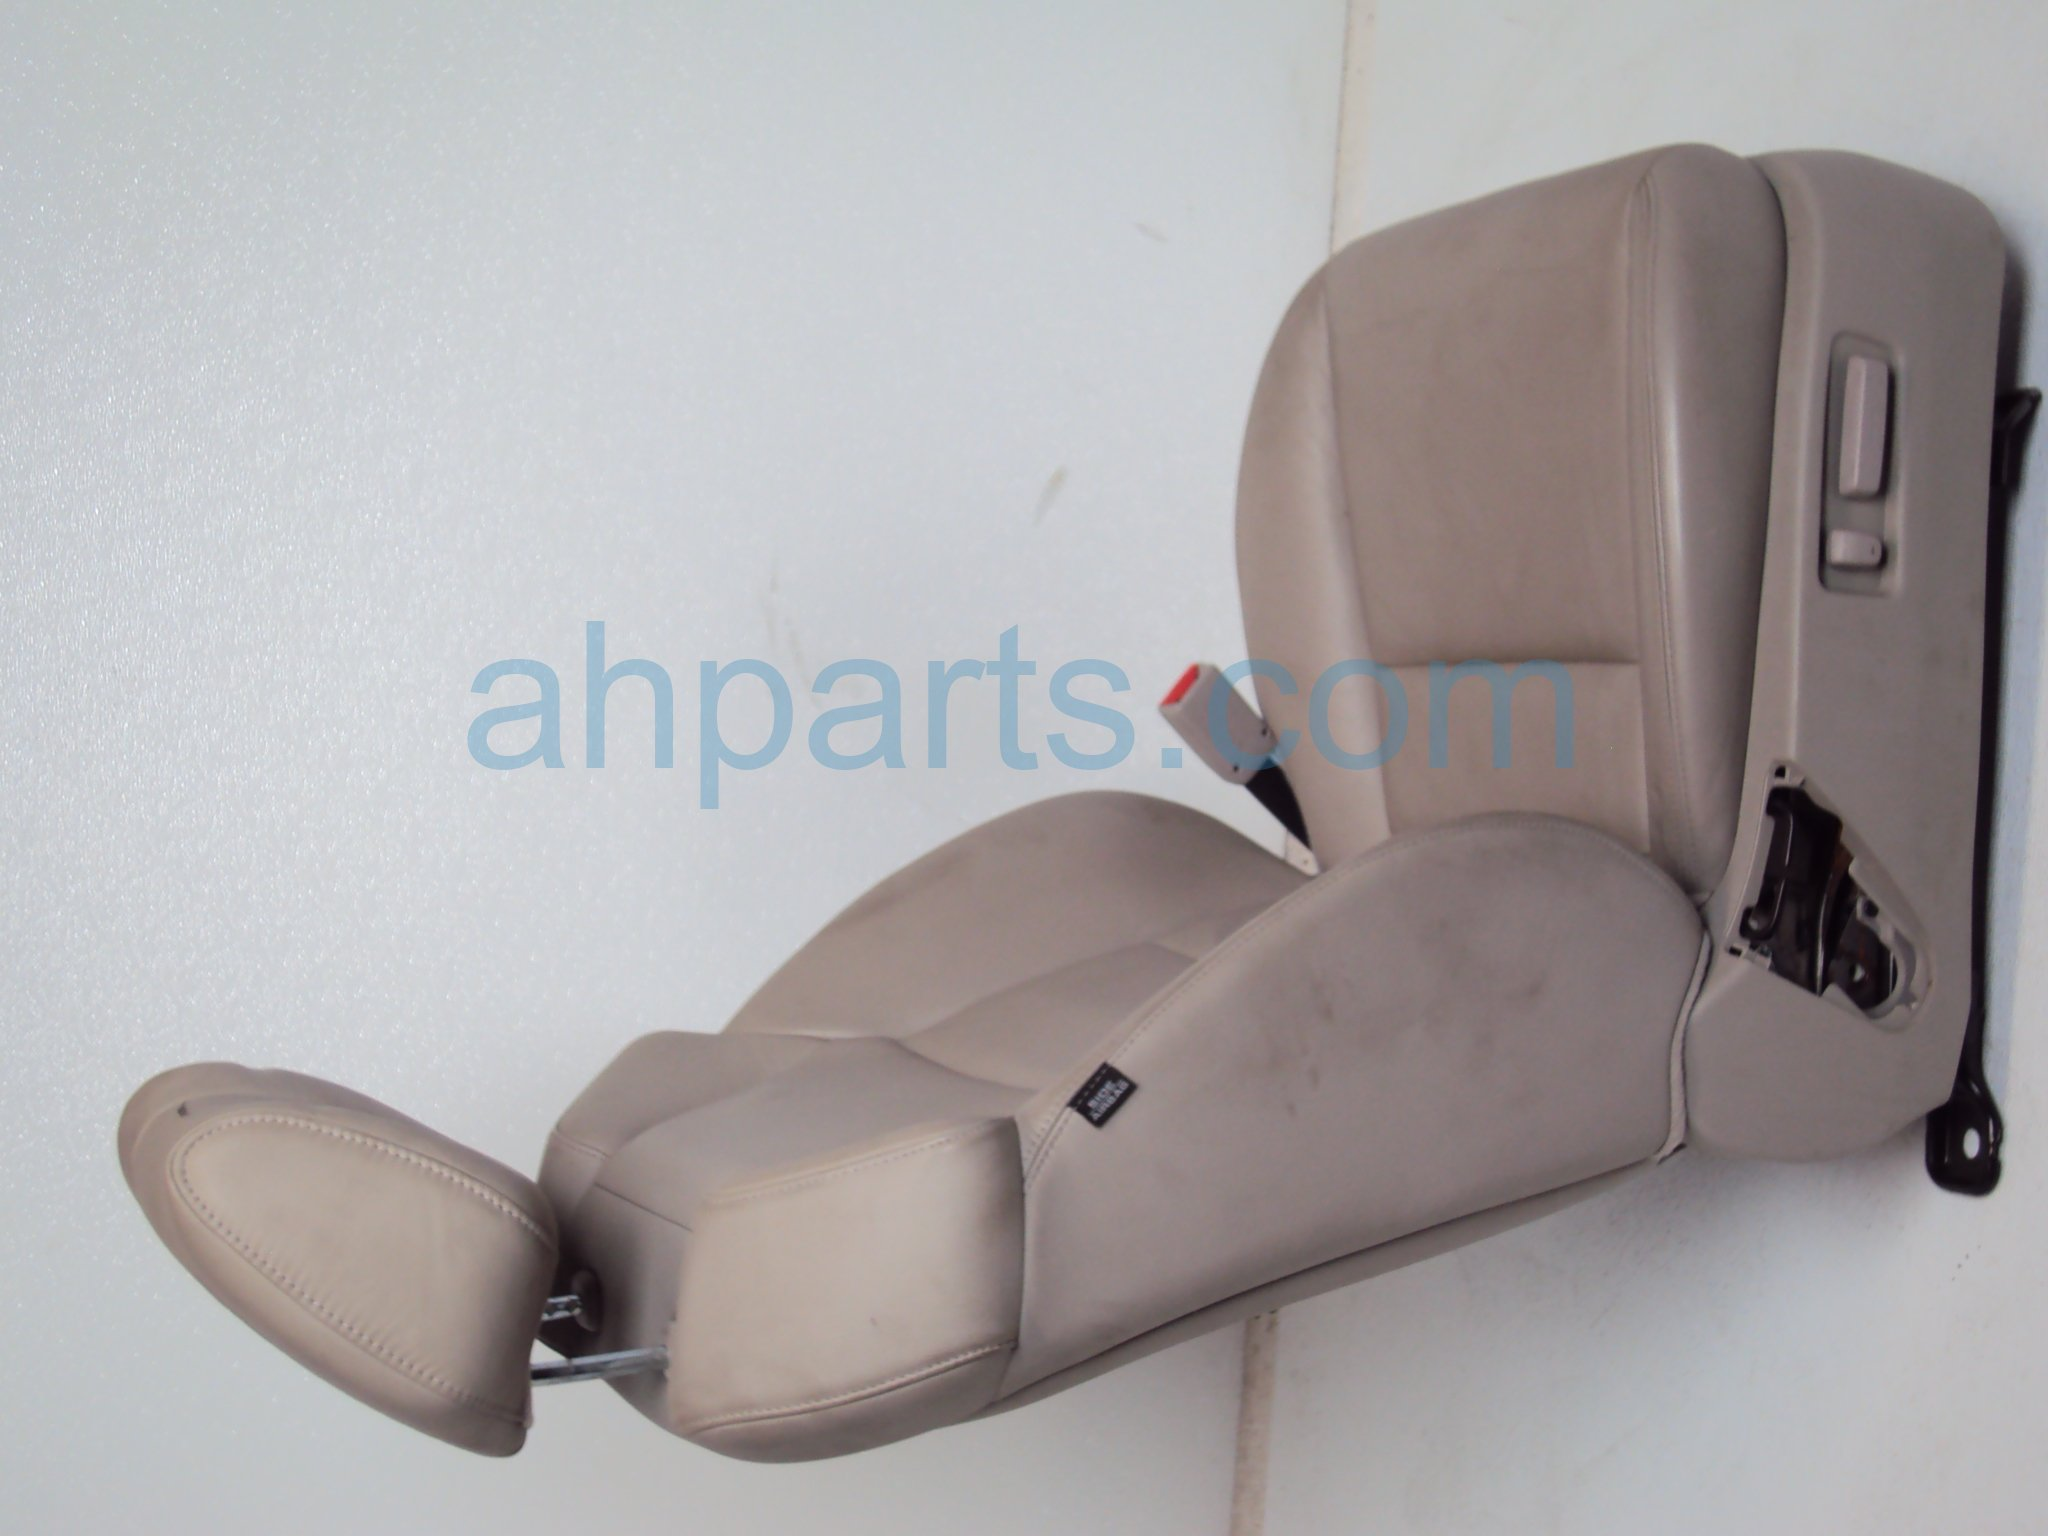 2010 Acura MDX Front passenger SEAT Gray color 04811 STX L01ZC 04811STXL01ZC Replacement